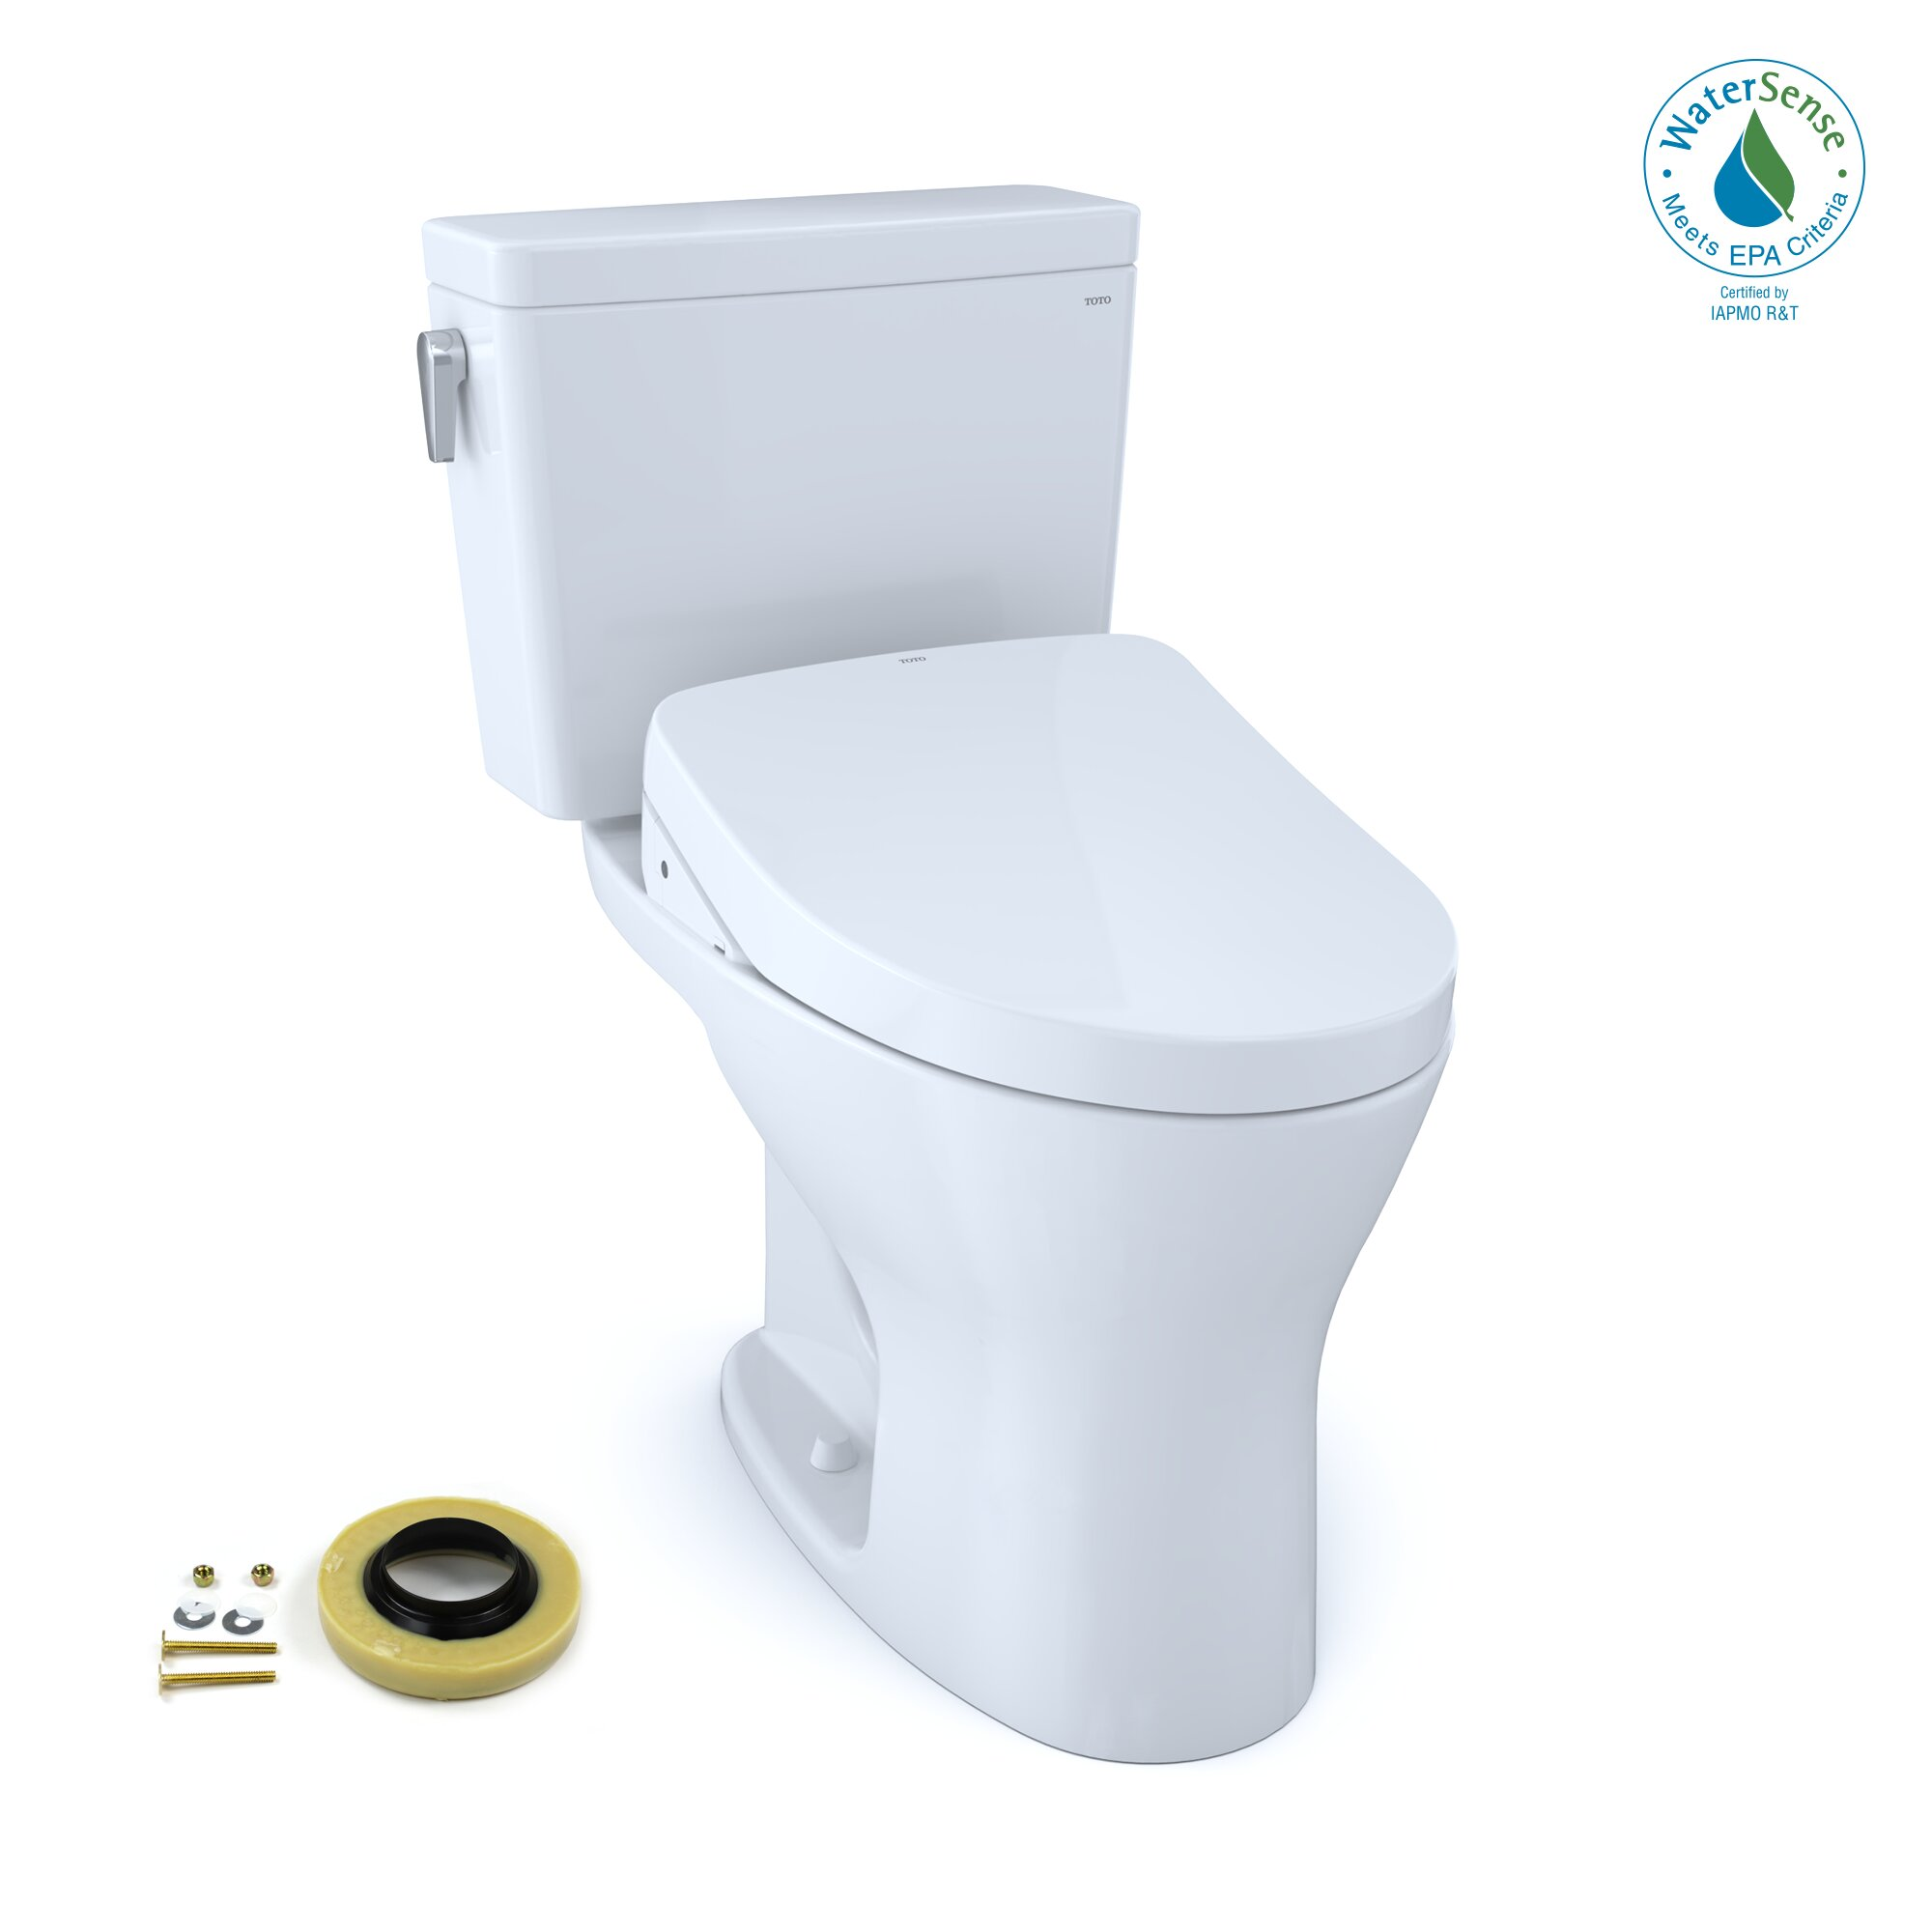 Superb Drake Dual Flush Elongated Two Piece Toilet With Bidet Seat Wax Ring And Toilet Mounting Bolts Pabps2019 Chair Design Images Pabps2019Com